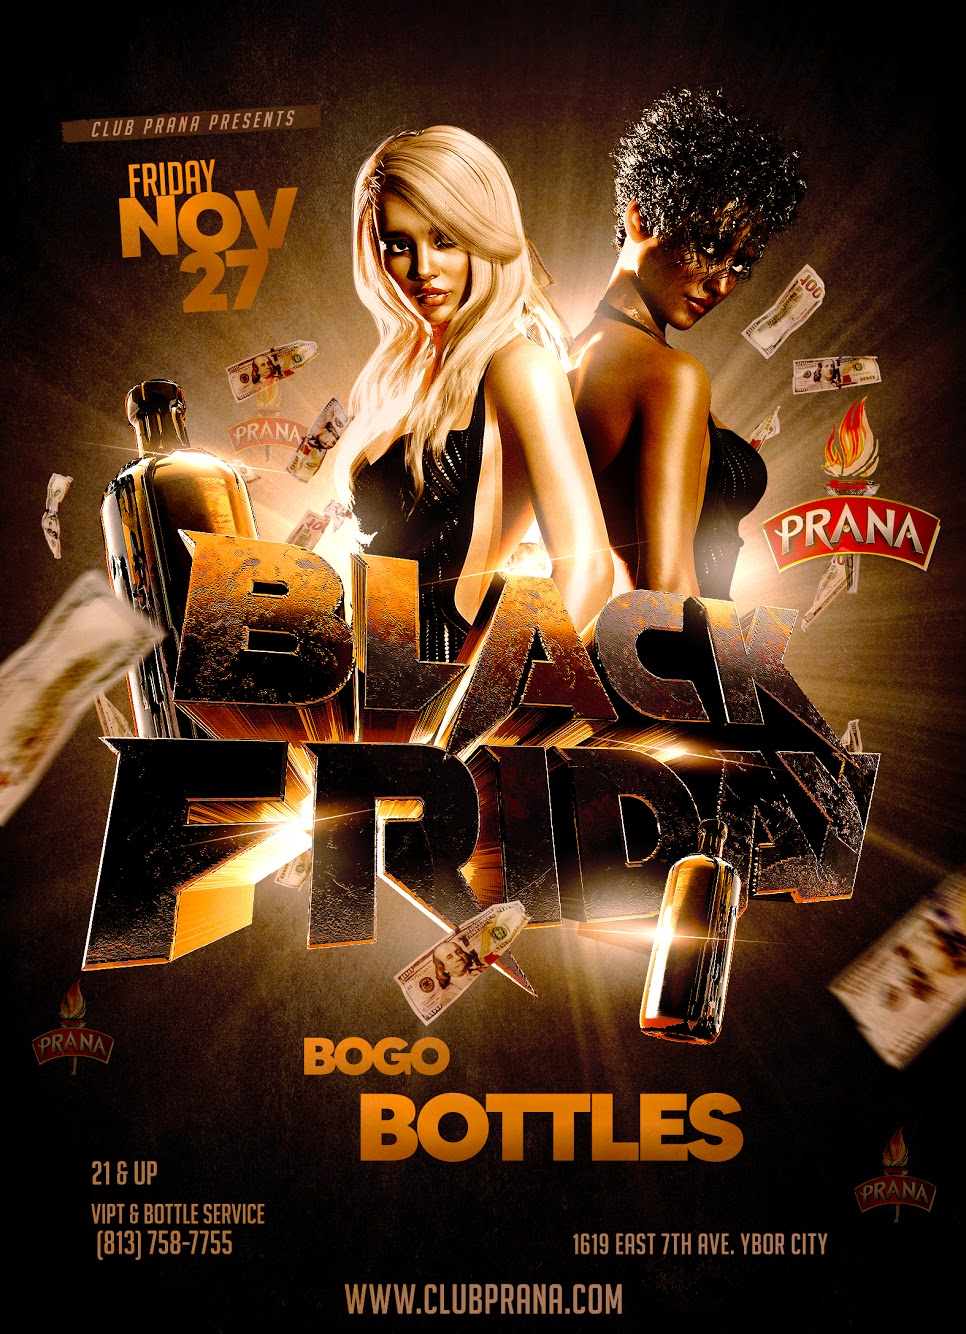 Black Friday With BOGO Bottle Specials